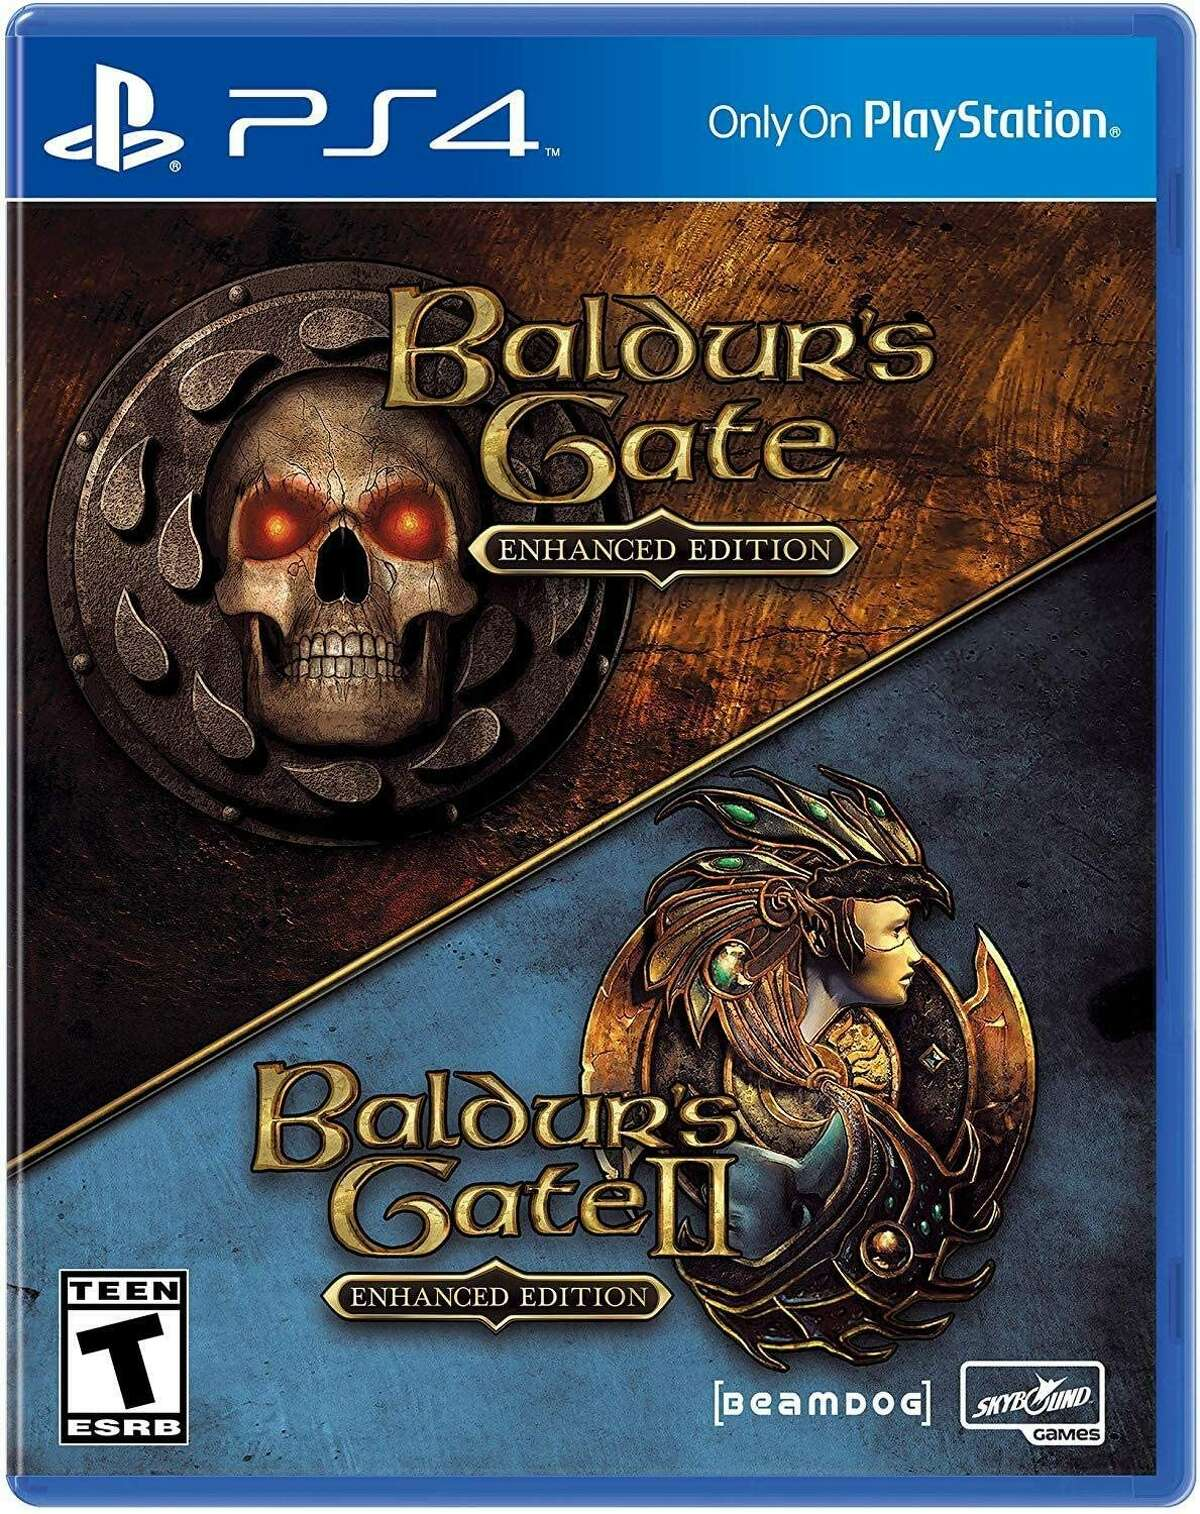 Baldur's Gate I & II are available as a package on Nintendo Switch ($29.83), Playstation 4 ($19.79) and XBox One ($32.59), and separate on PC: Baldur's Gate ($4.99) and Baldur's Gate II ($12.99)